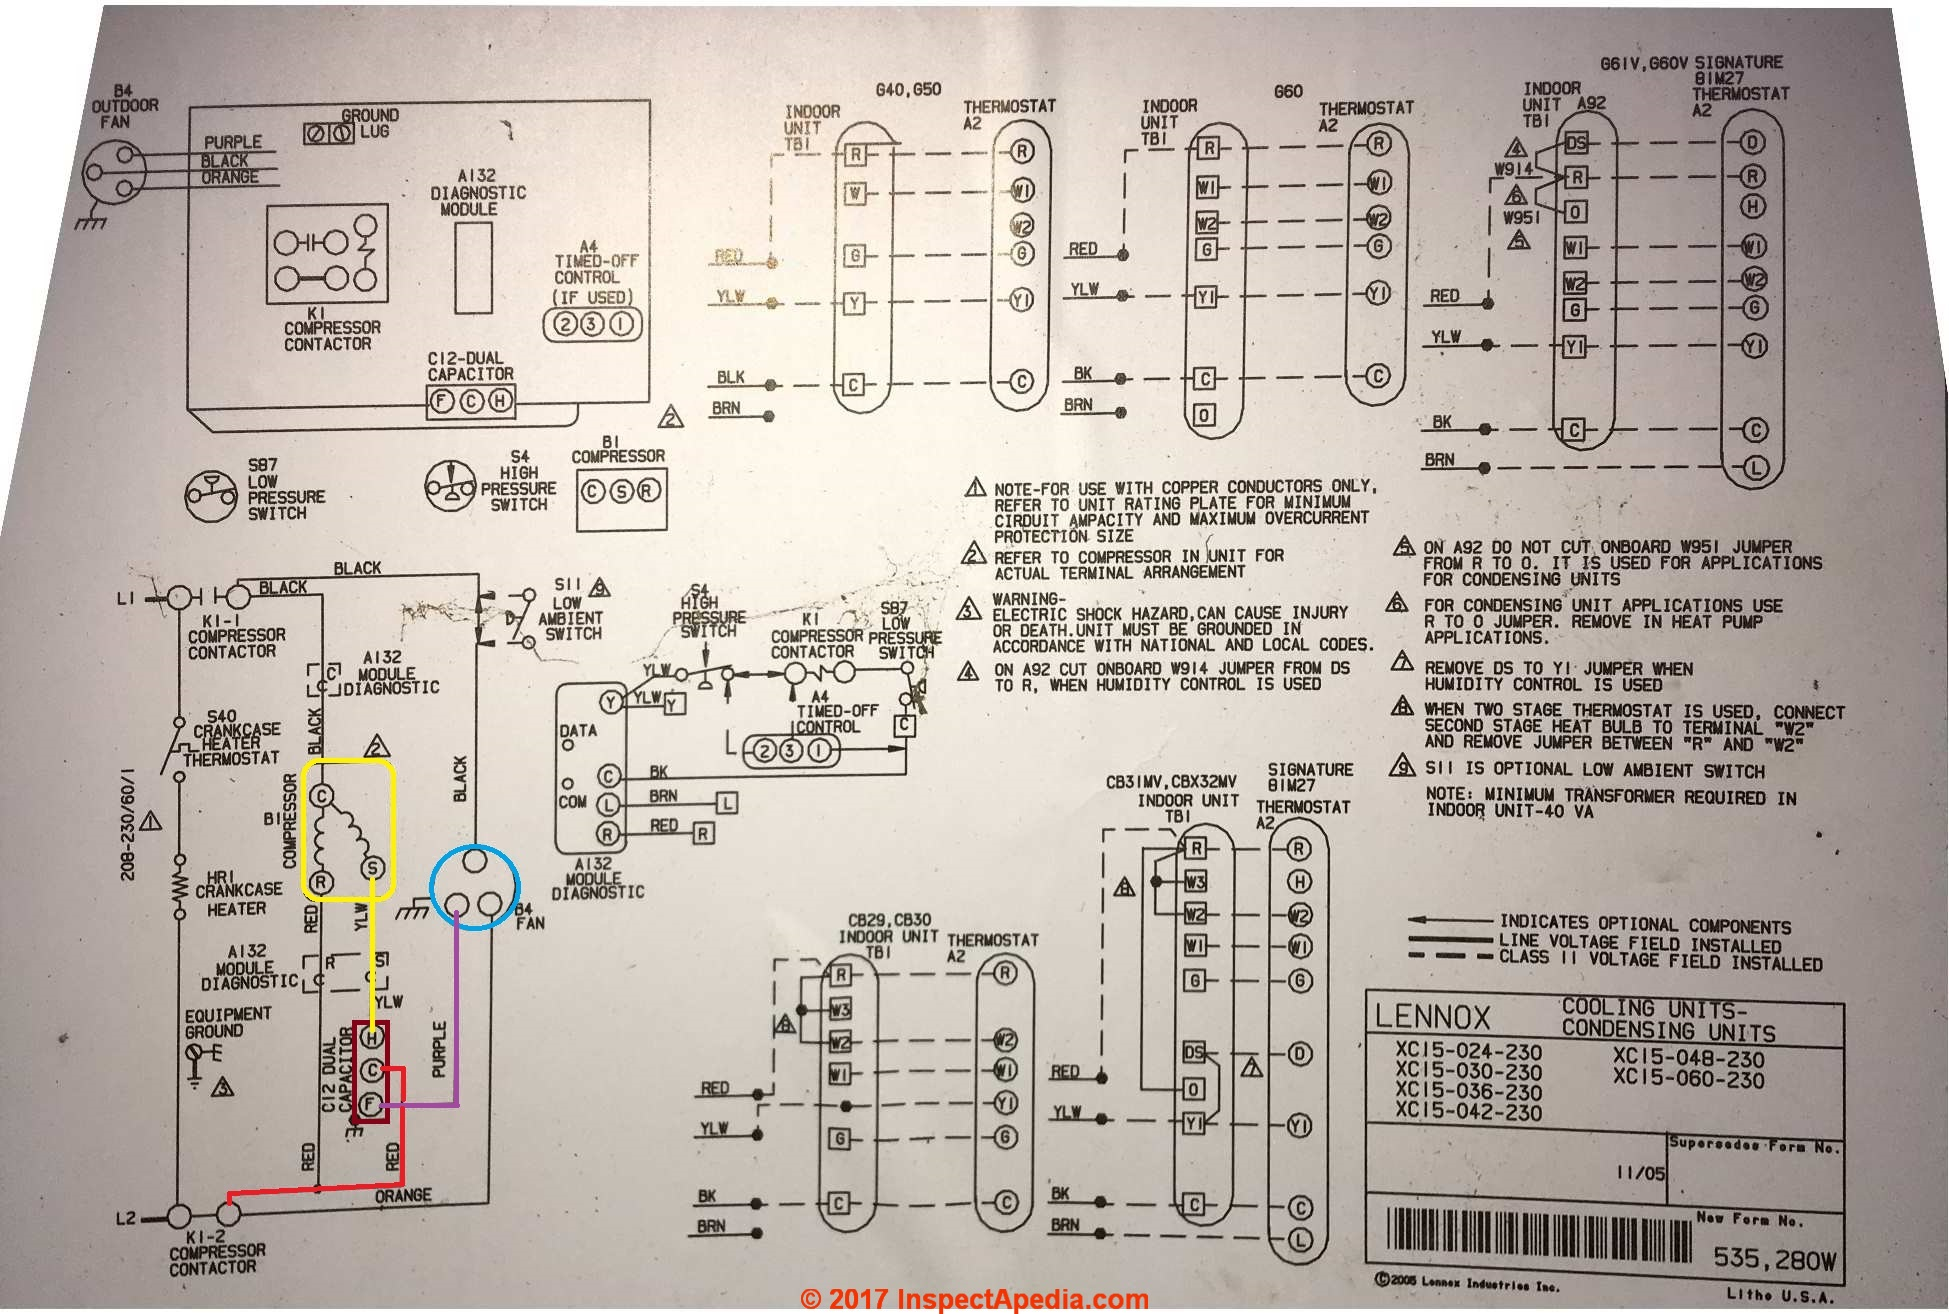 Hard Start Capacitor Wiring Diagram Page 2 And Run Electric Motor Starting Types Installation Guide To Rh Inspectapedia Com Air Conditioner